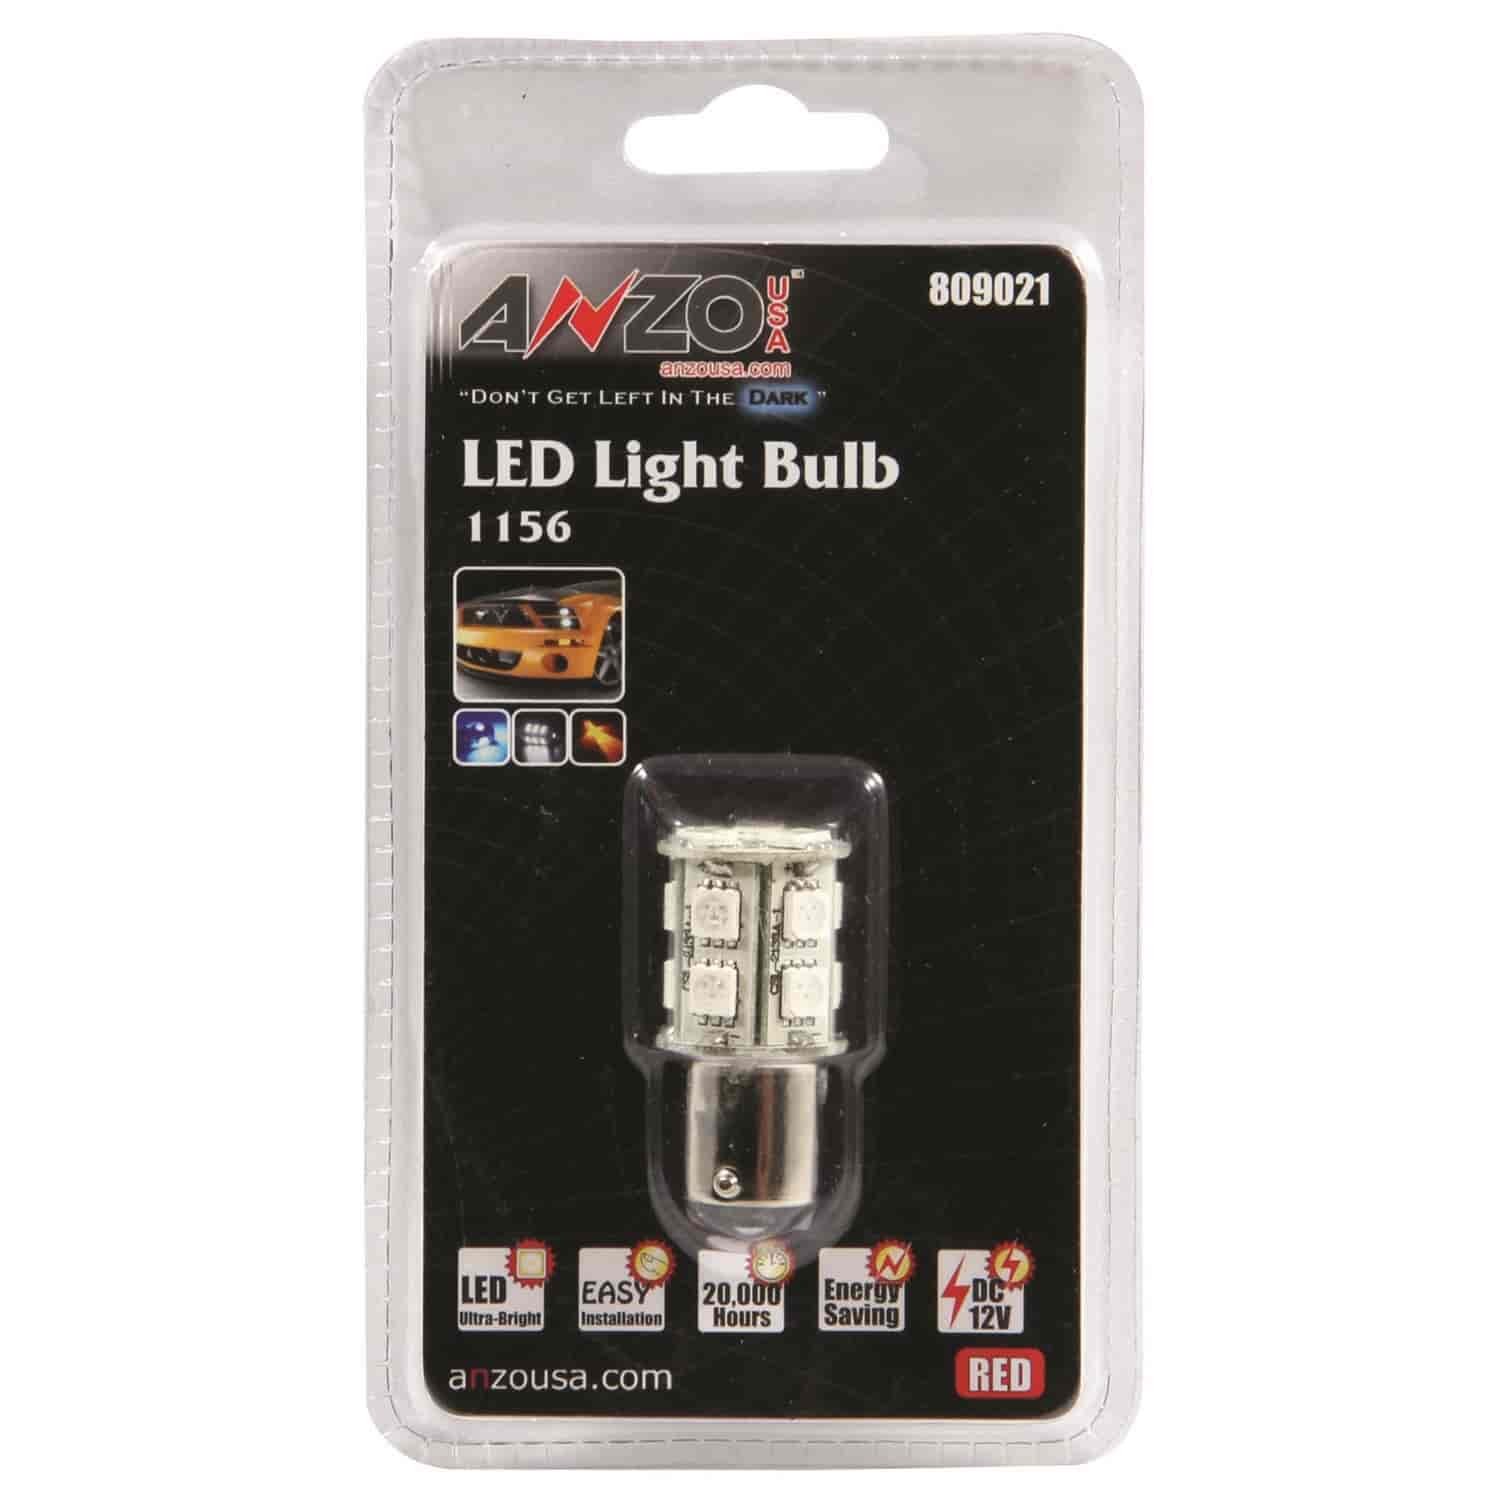 Anzo 809021 - Anzo LED Universal Light Bulbs